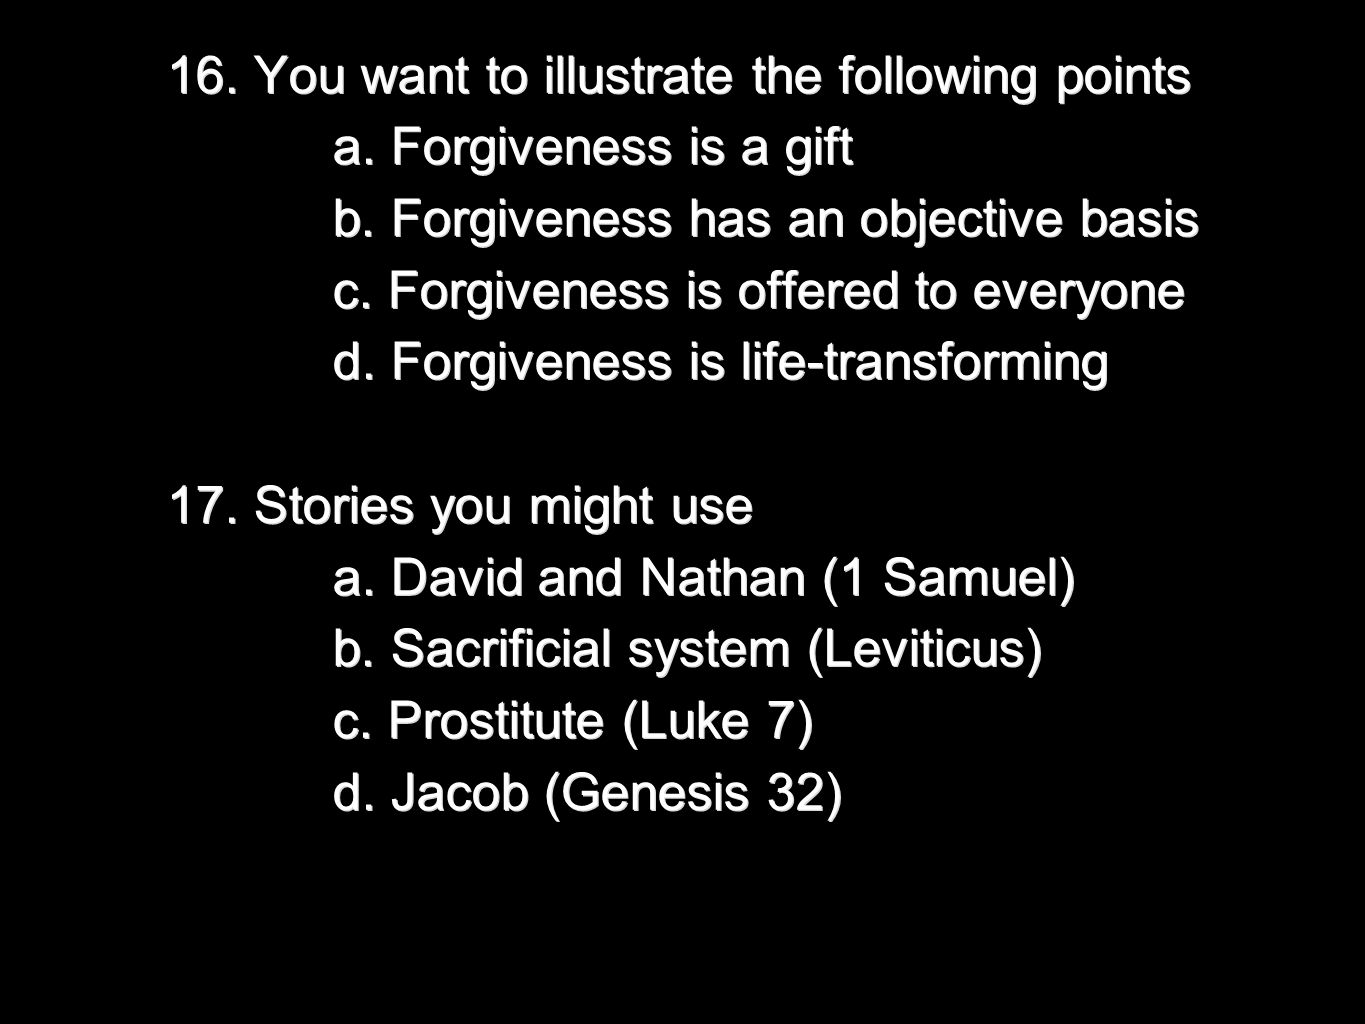 16. You want to illustrate the following points a. Forgiveness is a gift a. Forgiveness is a gift b. Forgiveness has an objective basis b. Forgiveness